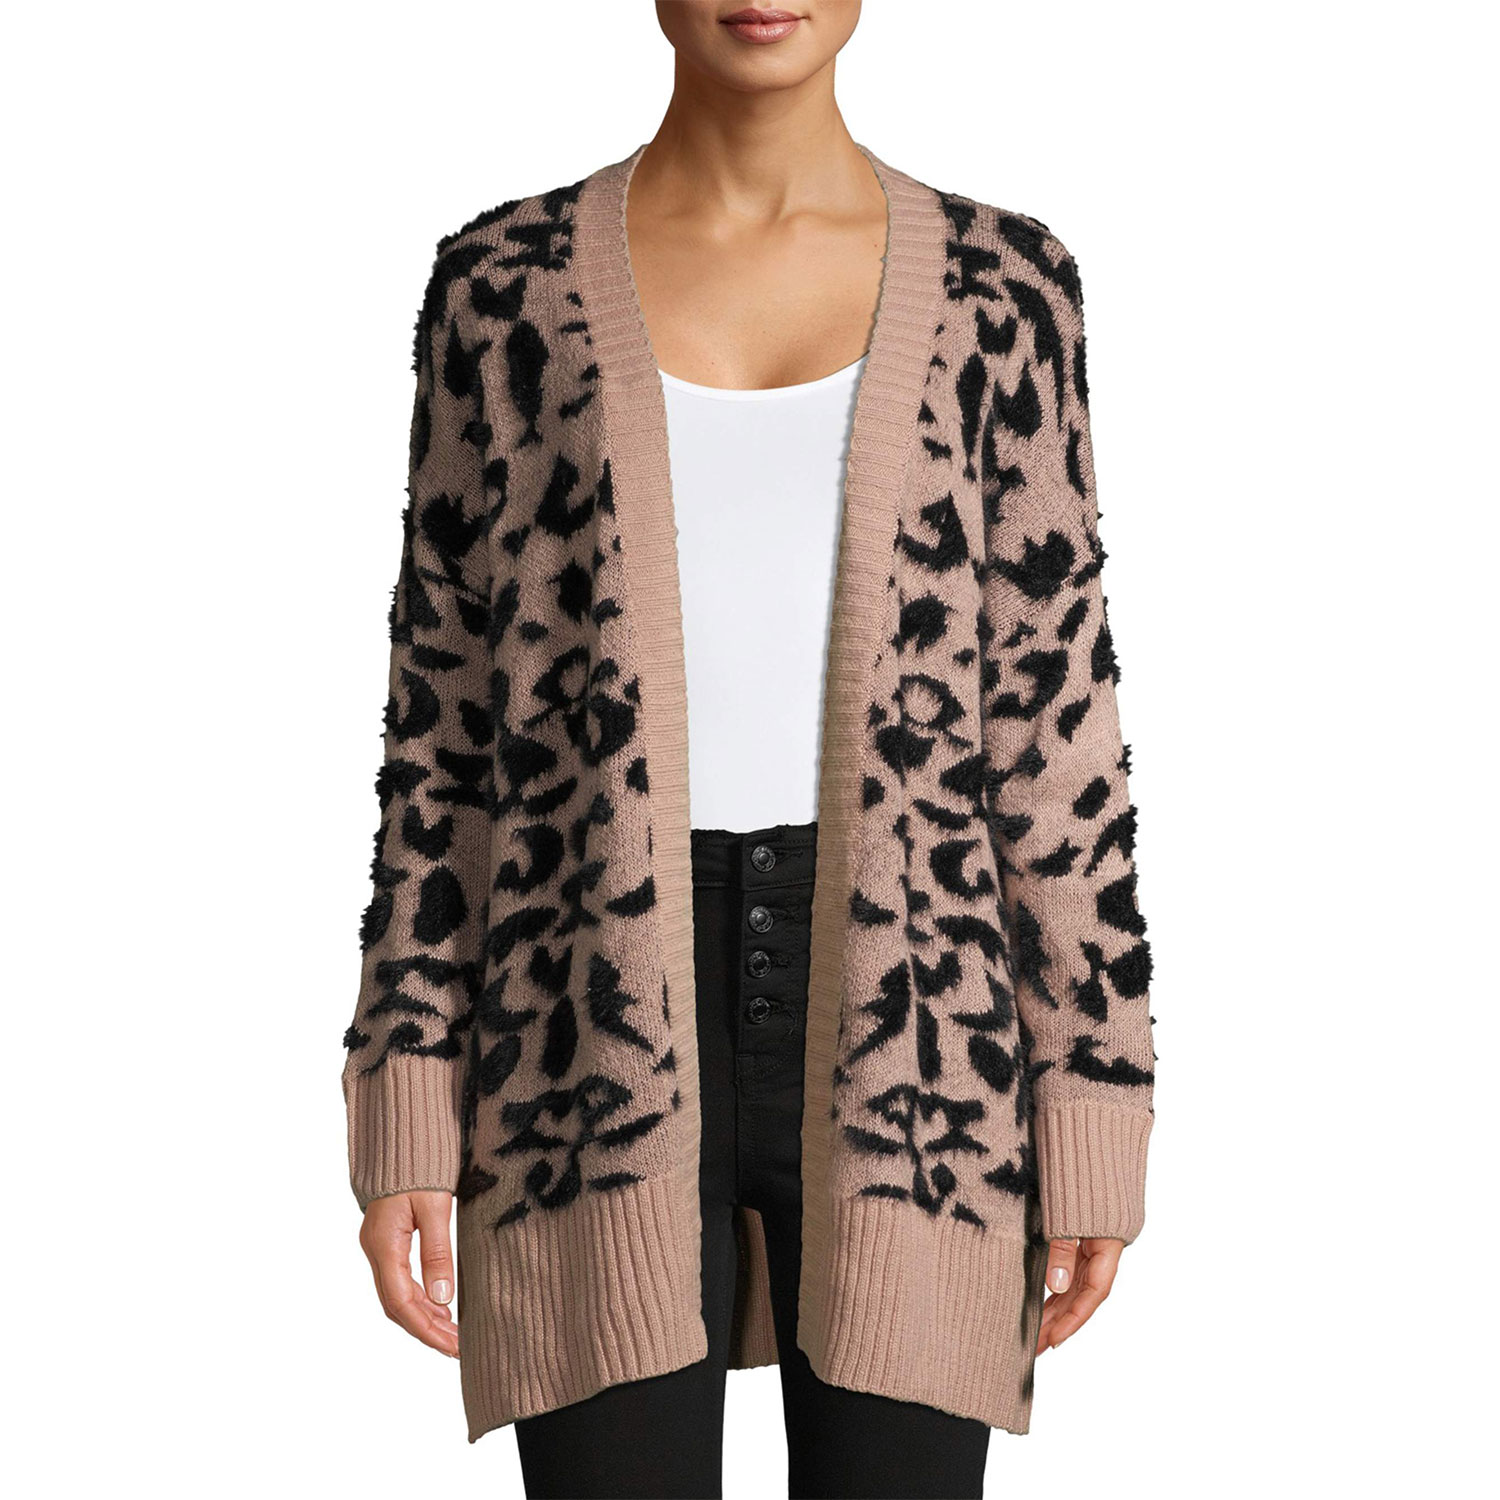 Dreamers by Debut - Dreamers by Debut Women's Leopard Print Cardigan